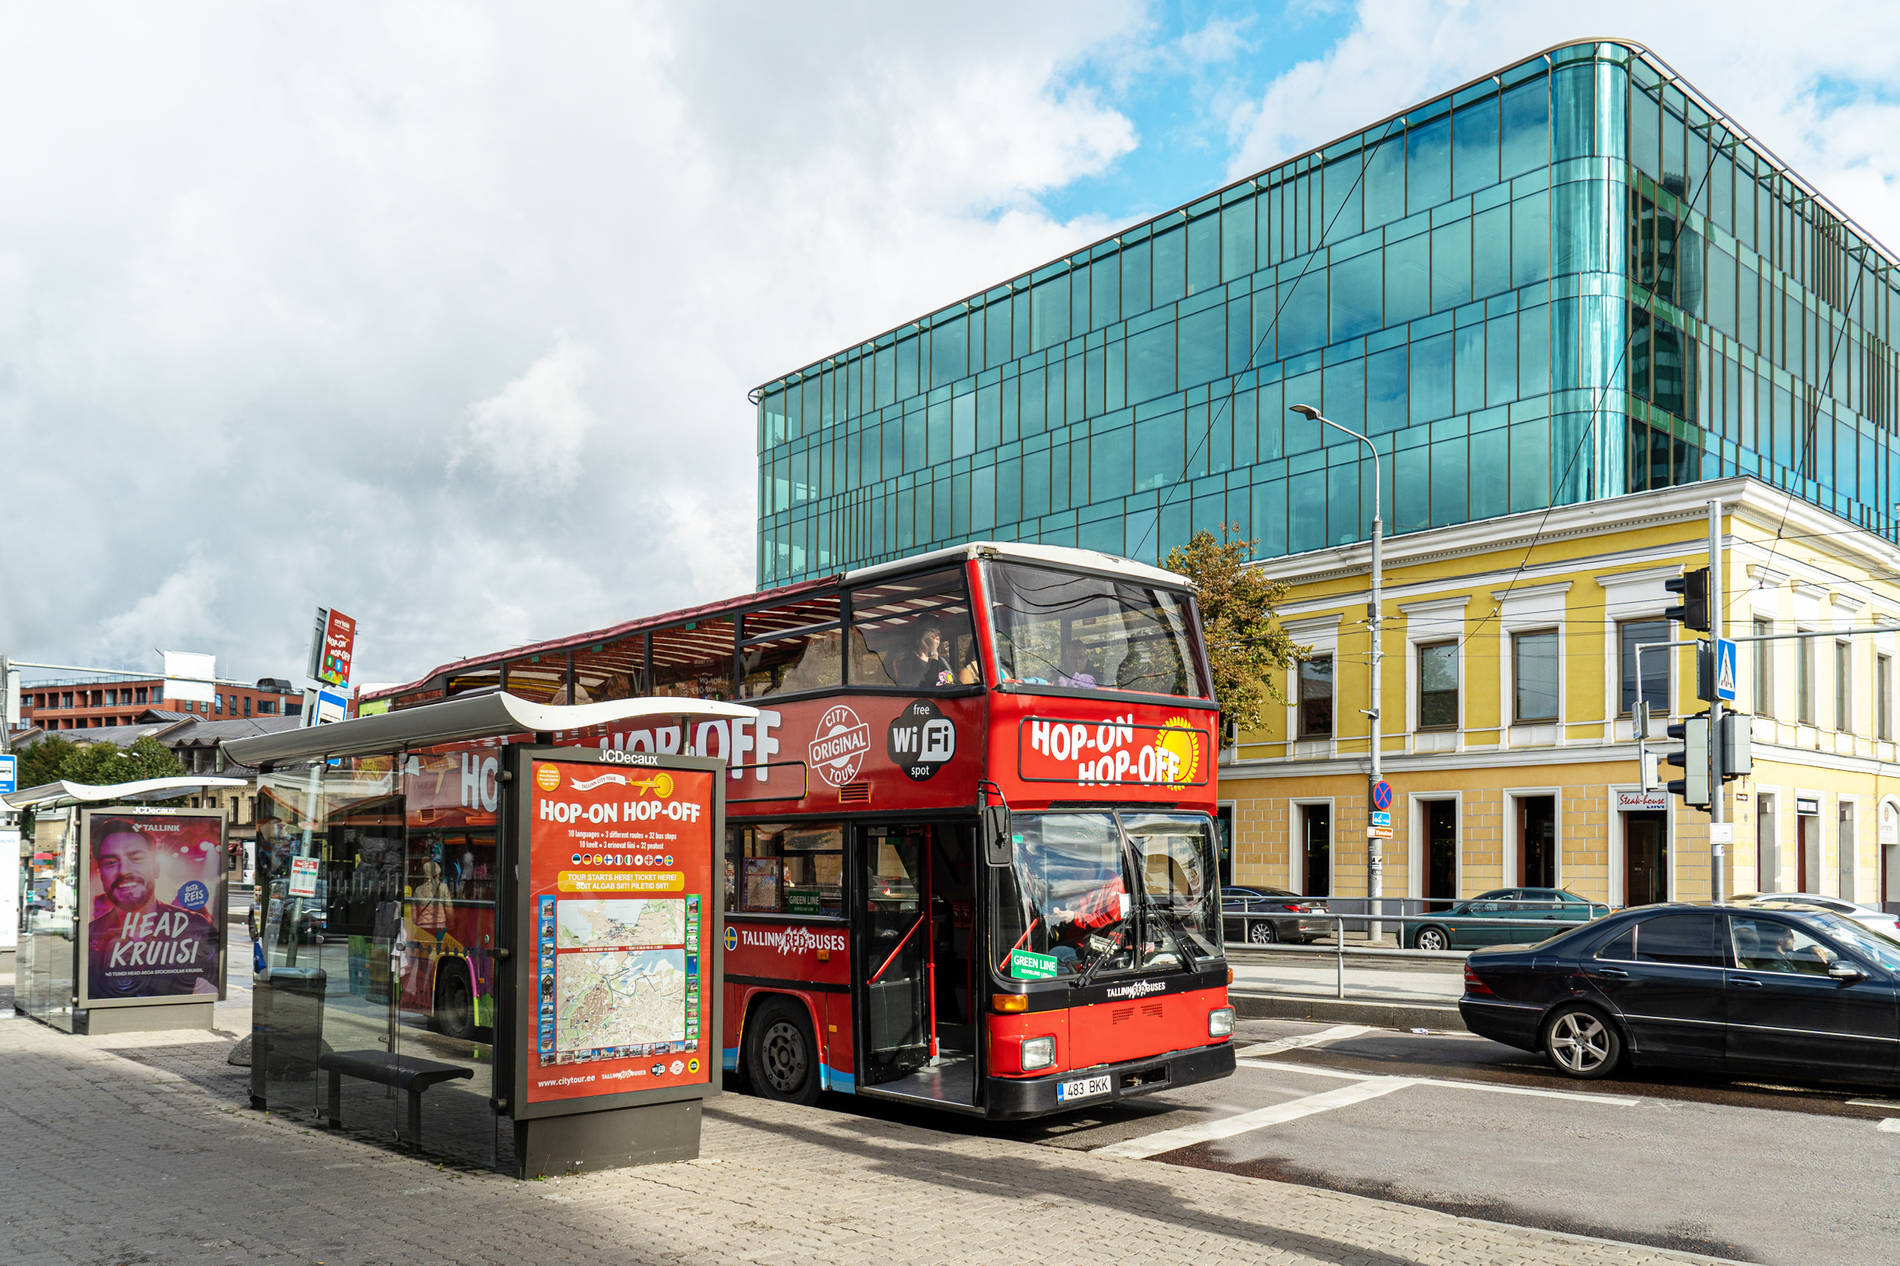 City Tour, Hop on Hop off bus in centre town of Tallinn, Estonia.